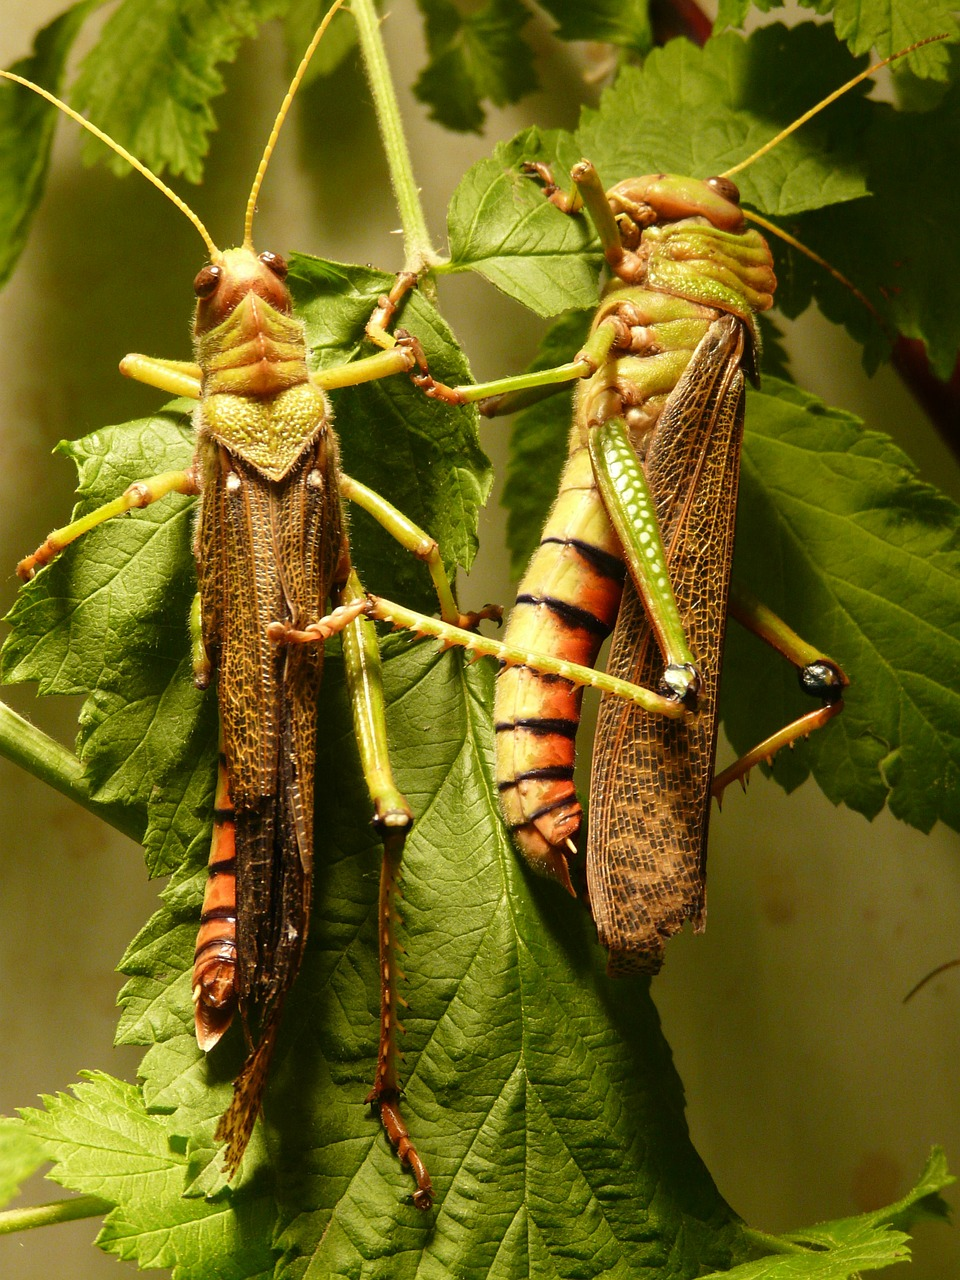 giant grasshopper grasshopper insect free photo